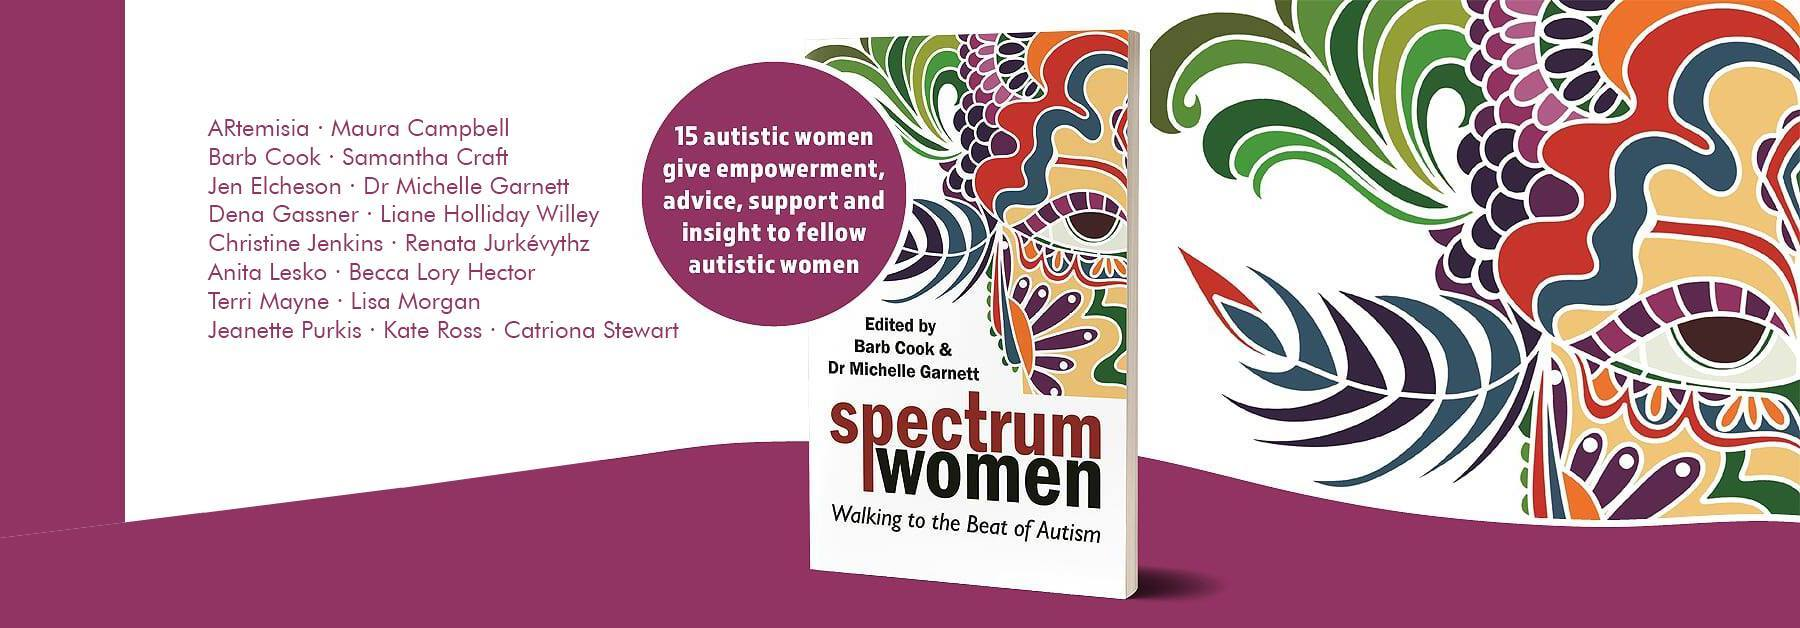 Spectrum Women book banner